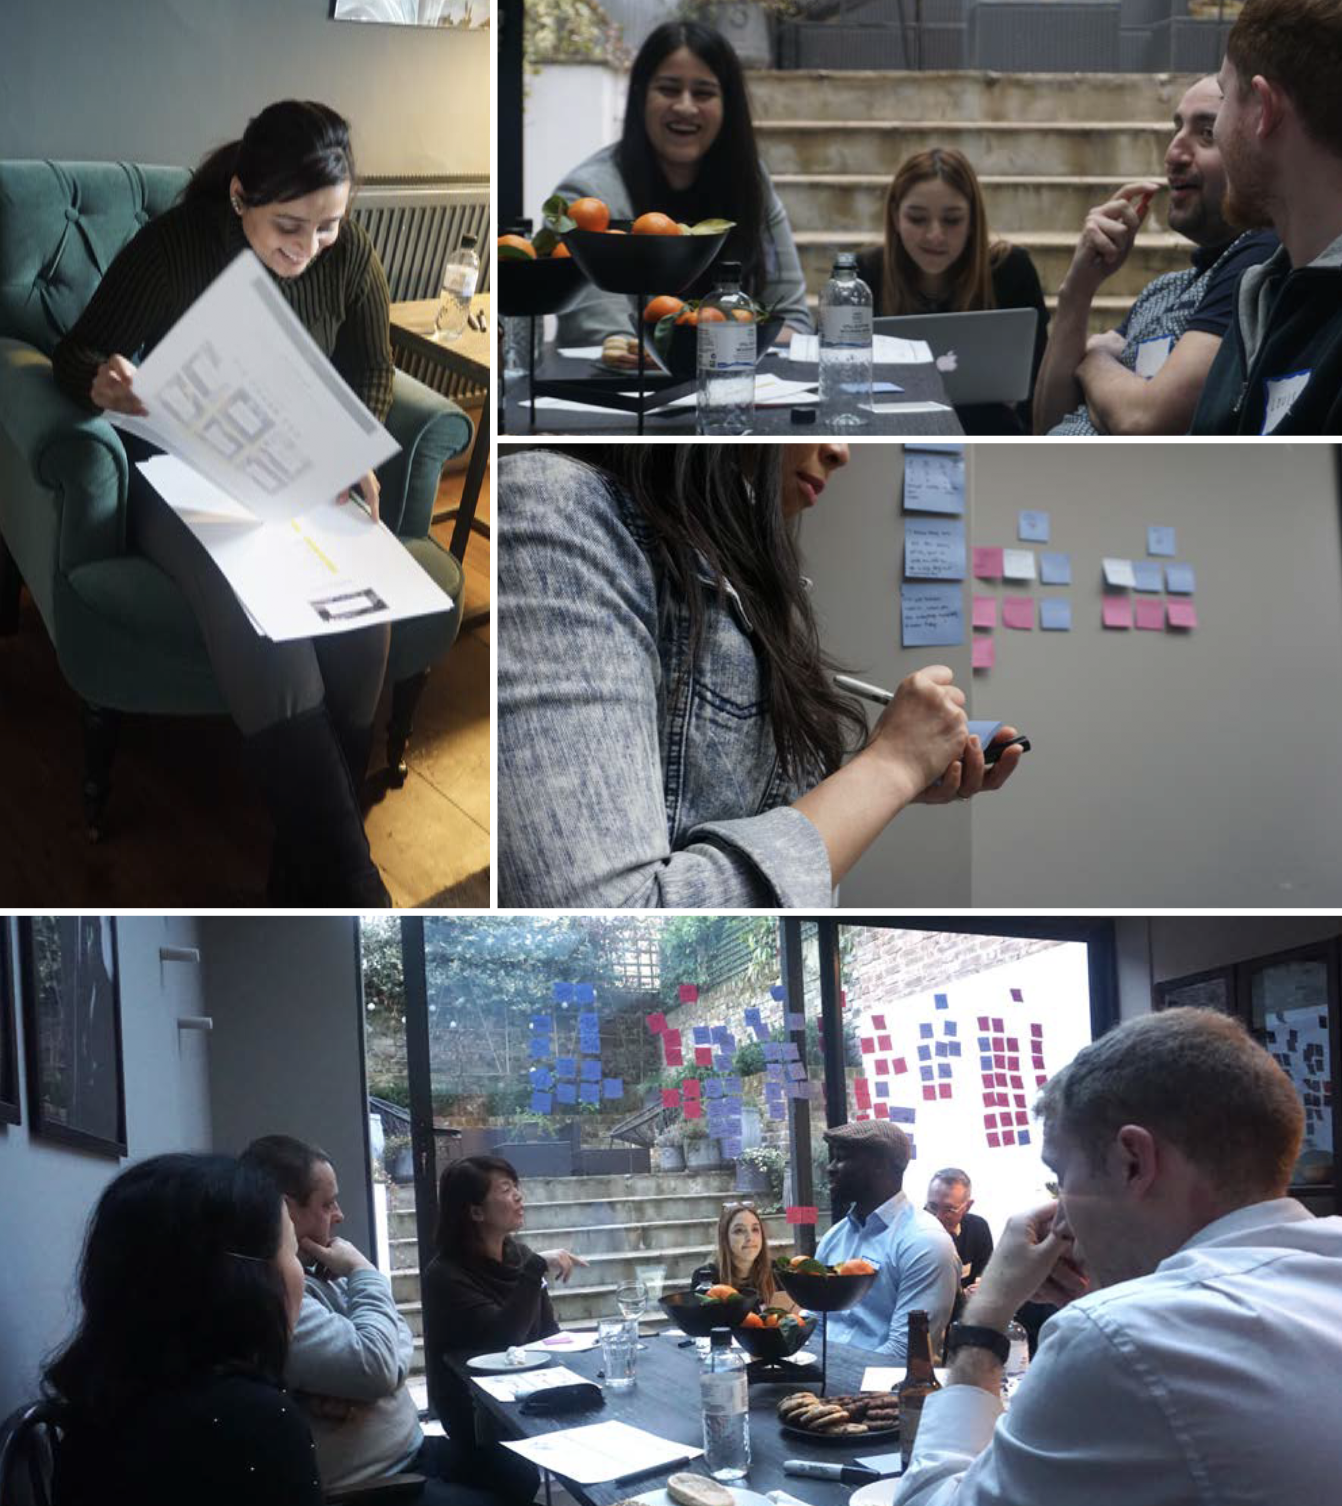 User Testing & Co-creation - I participated in and designed mockups and worksheets for user testing sessions that our team conducted. These sessions allowed us to walk through the user flows and features of our website and products.